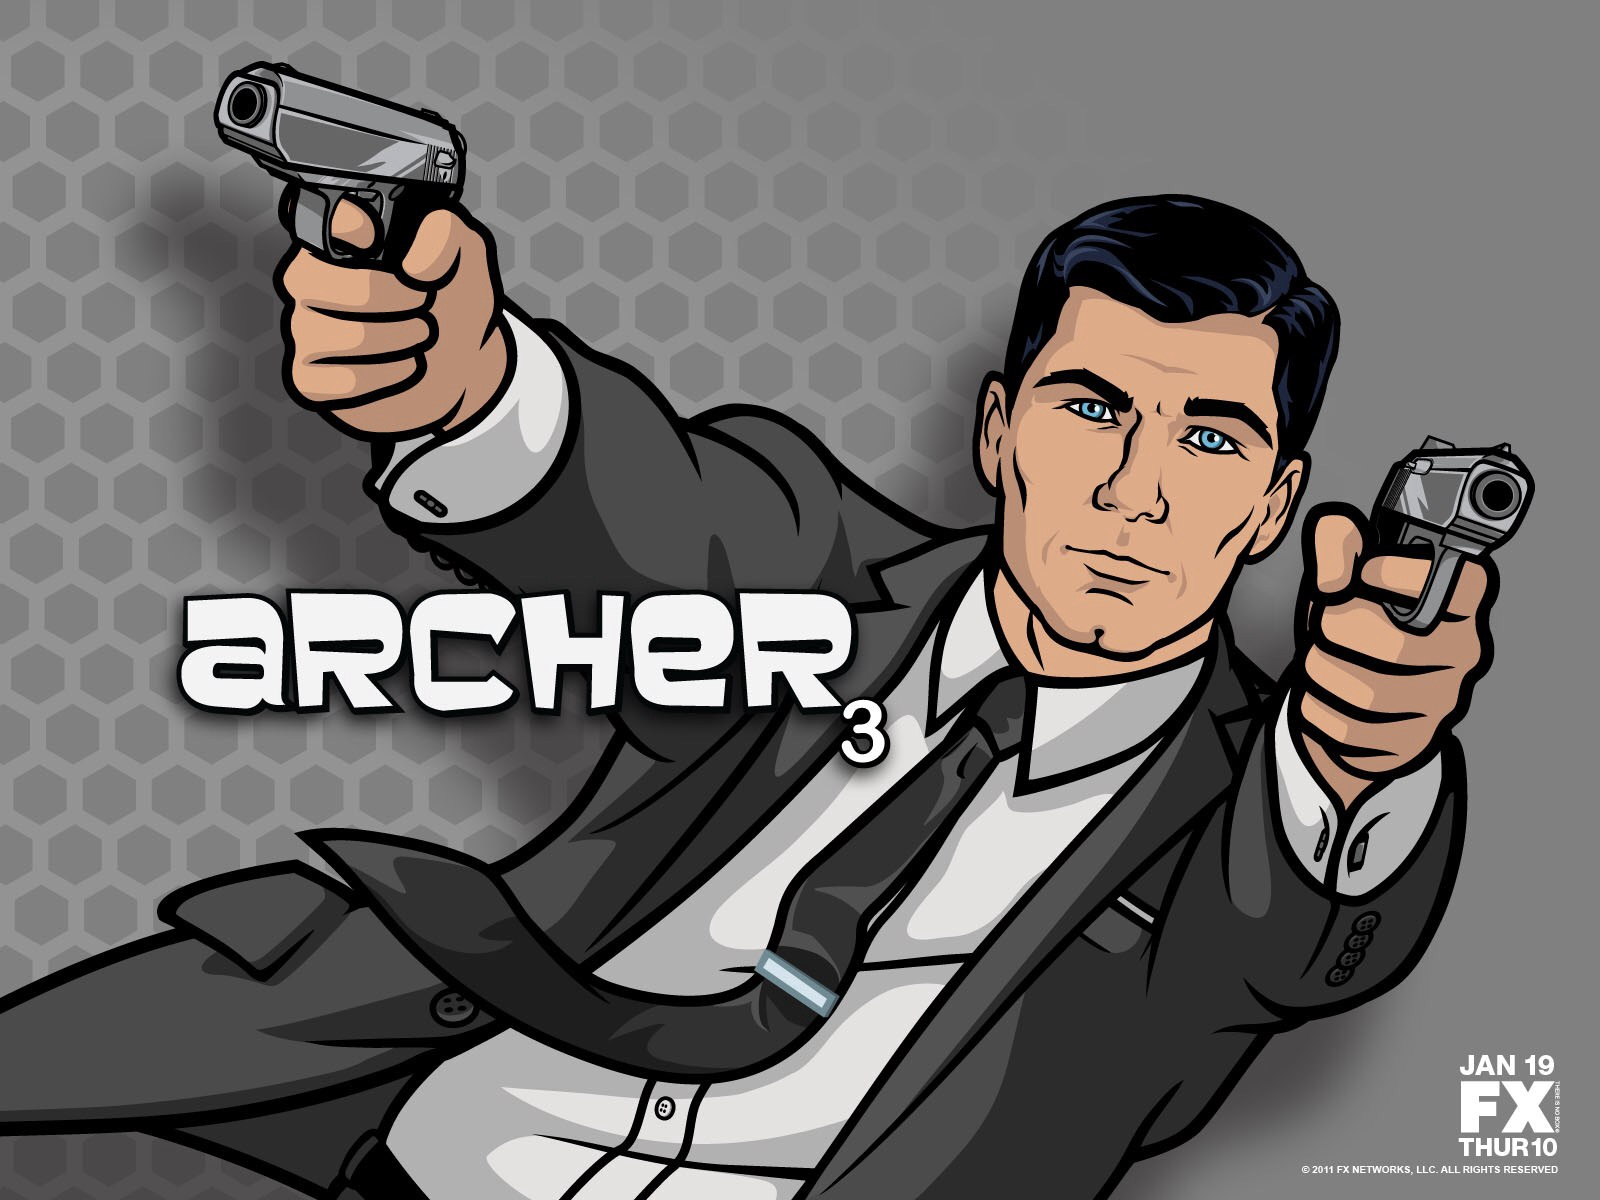 Archer images Archer wallpaper HD wallpaper and background photos